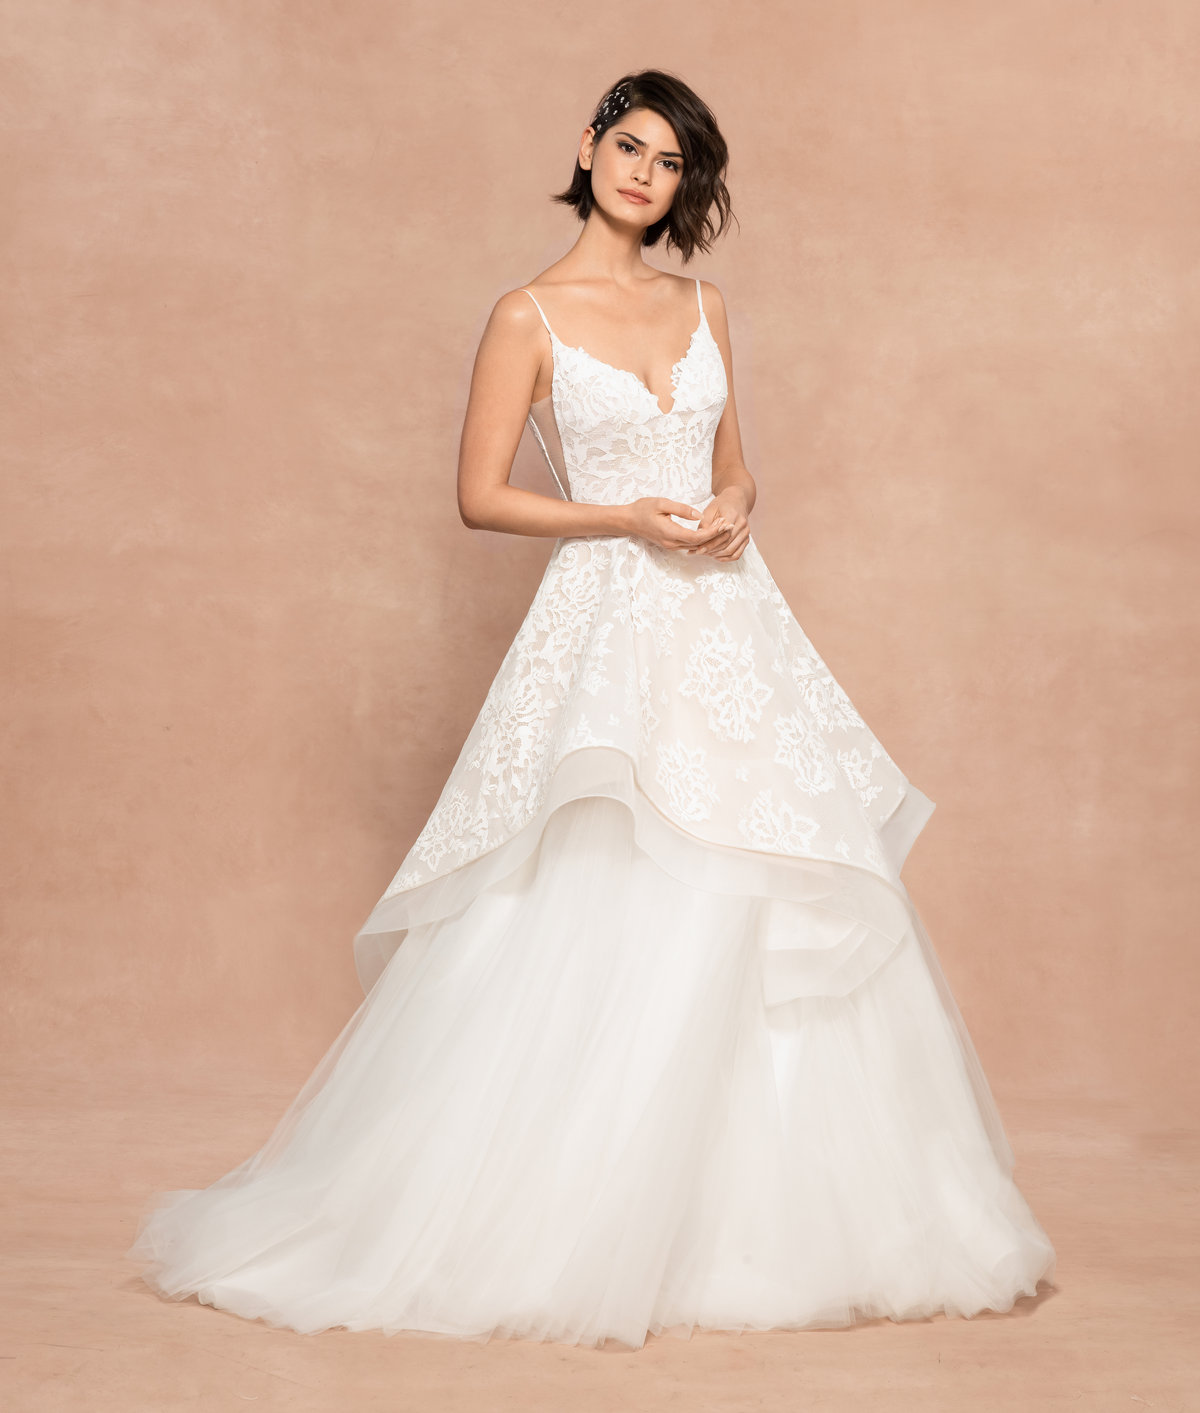 Jlm Couture Wedding Dresses With Pockets: Bridal Gowns And Wedding Dresses By JLM Couture